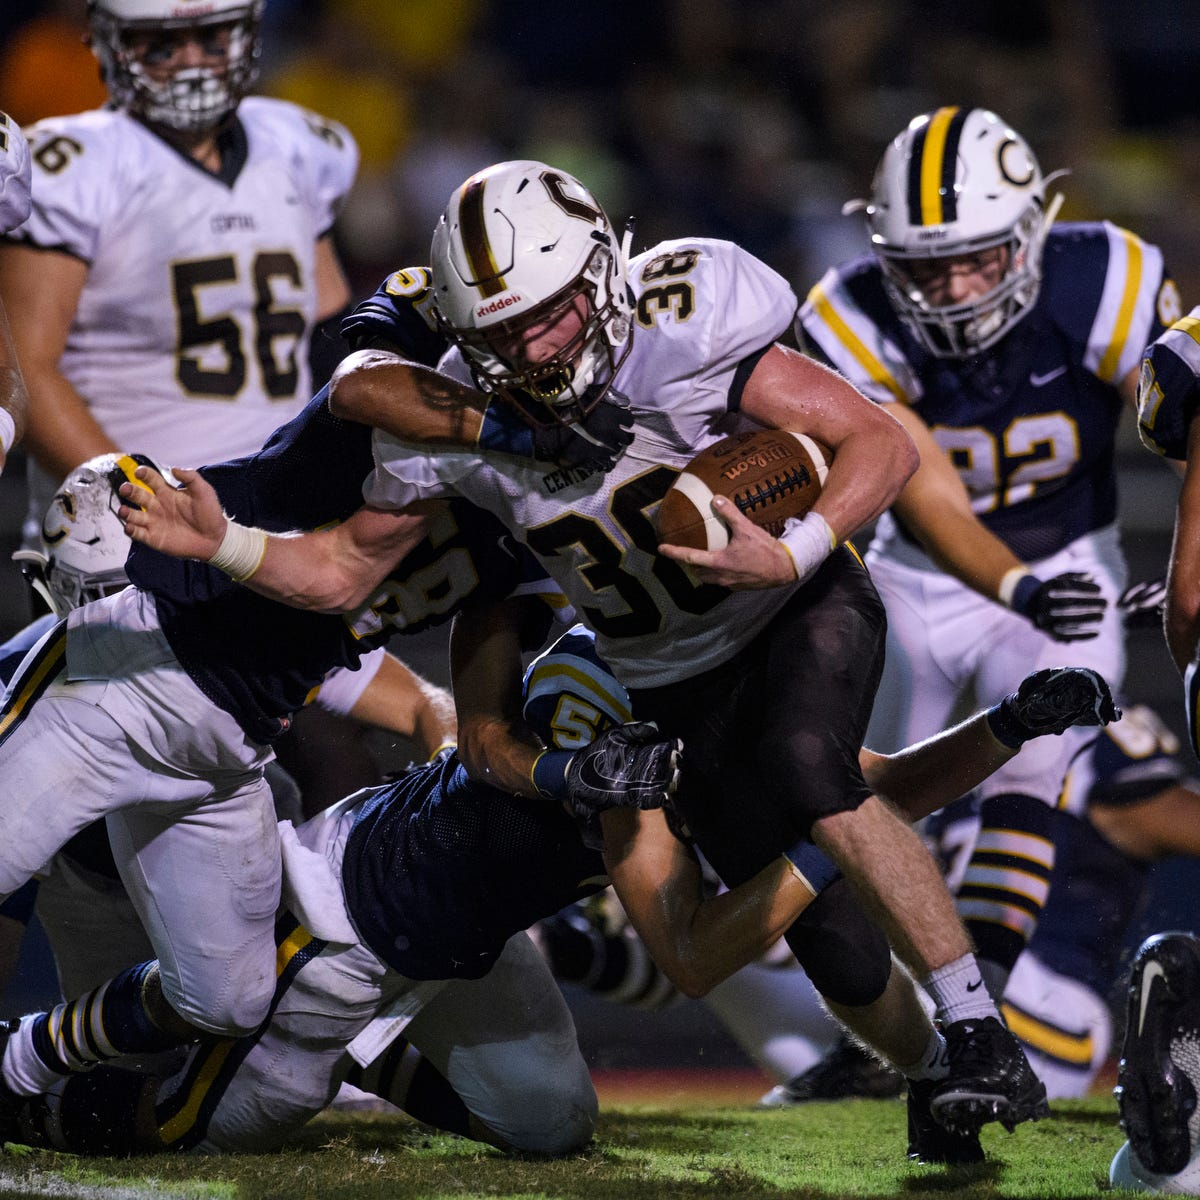 Live: Scores and updates from Week 5 of Evansville-area high school football games